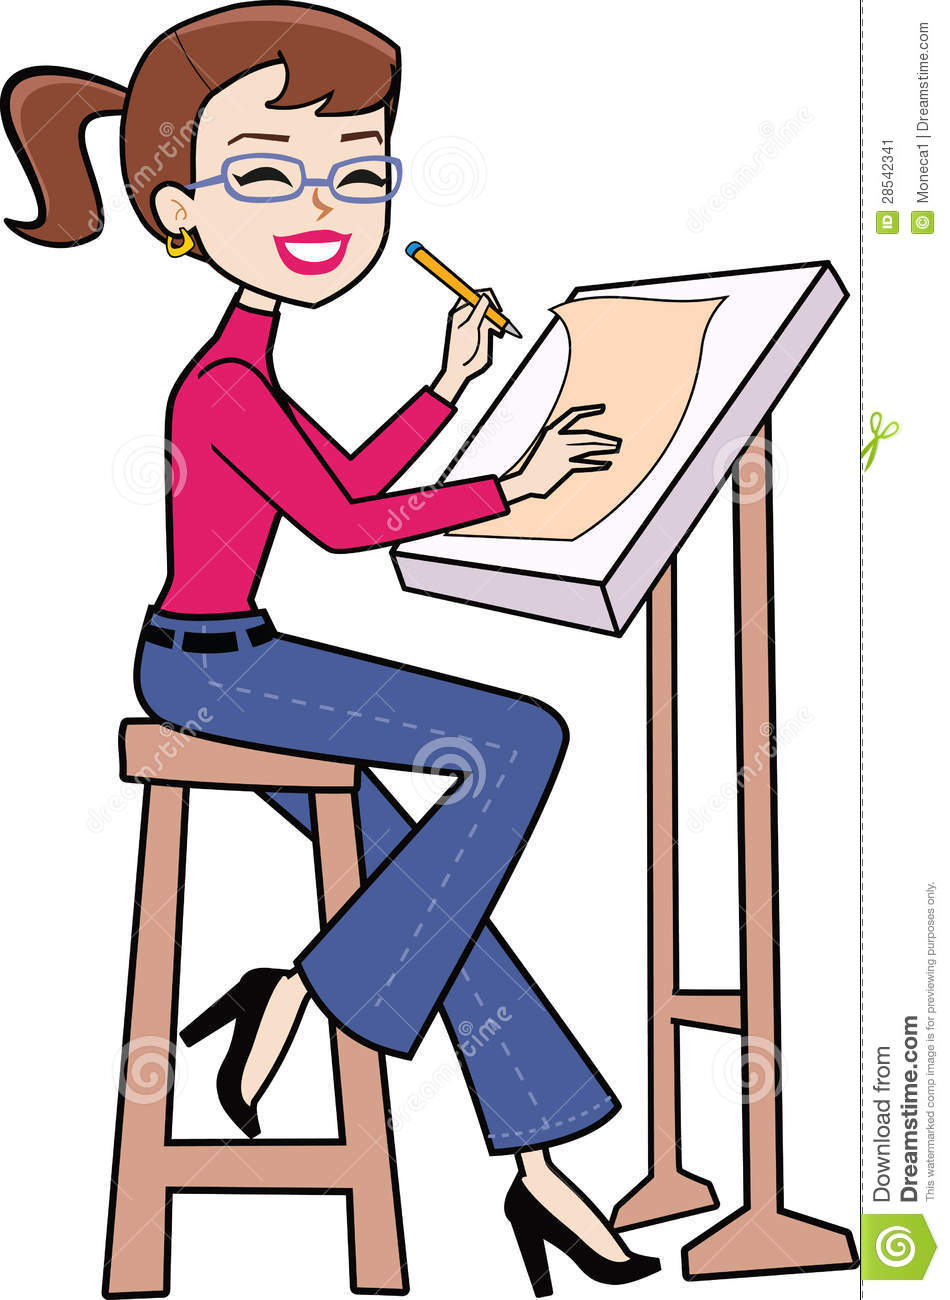 someone drawing clip art at getdrawings com free for personal use rh getdrawings com